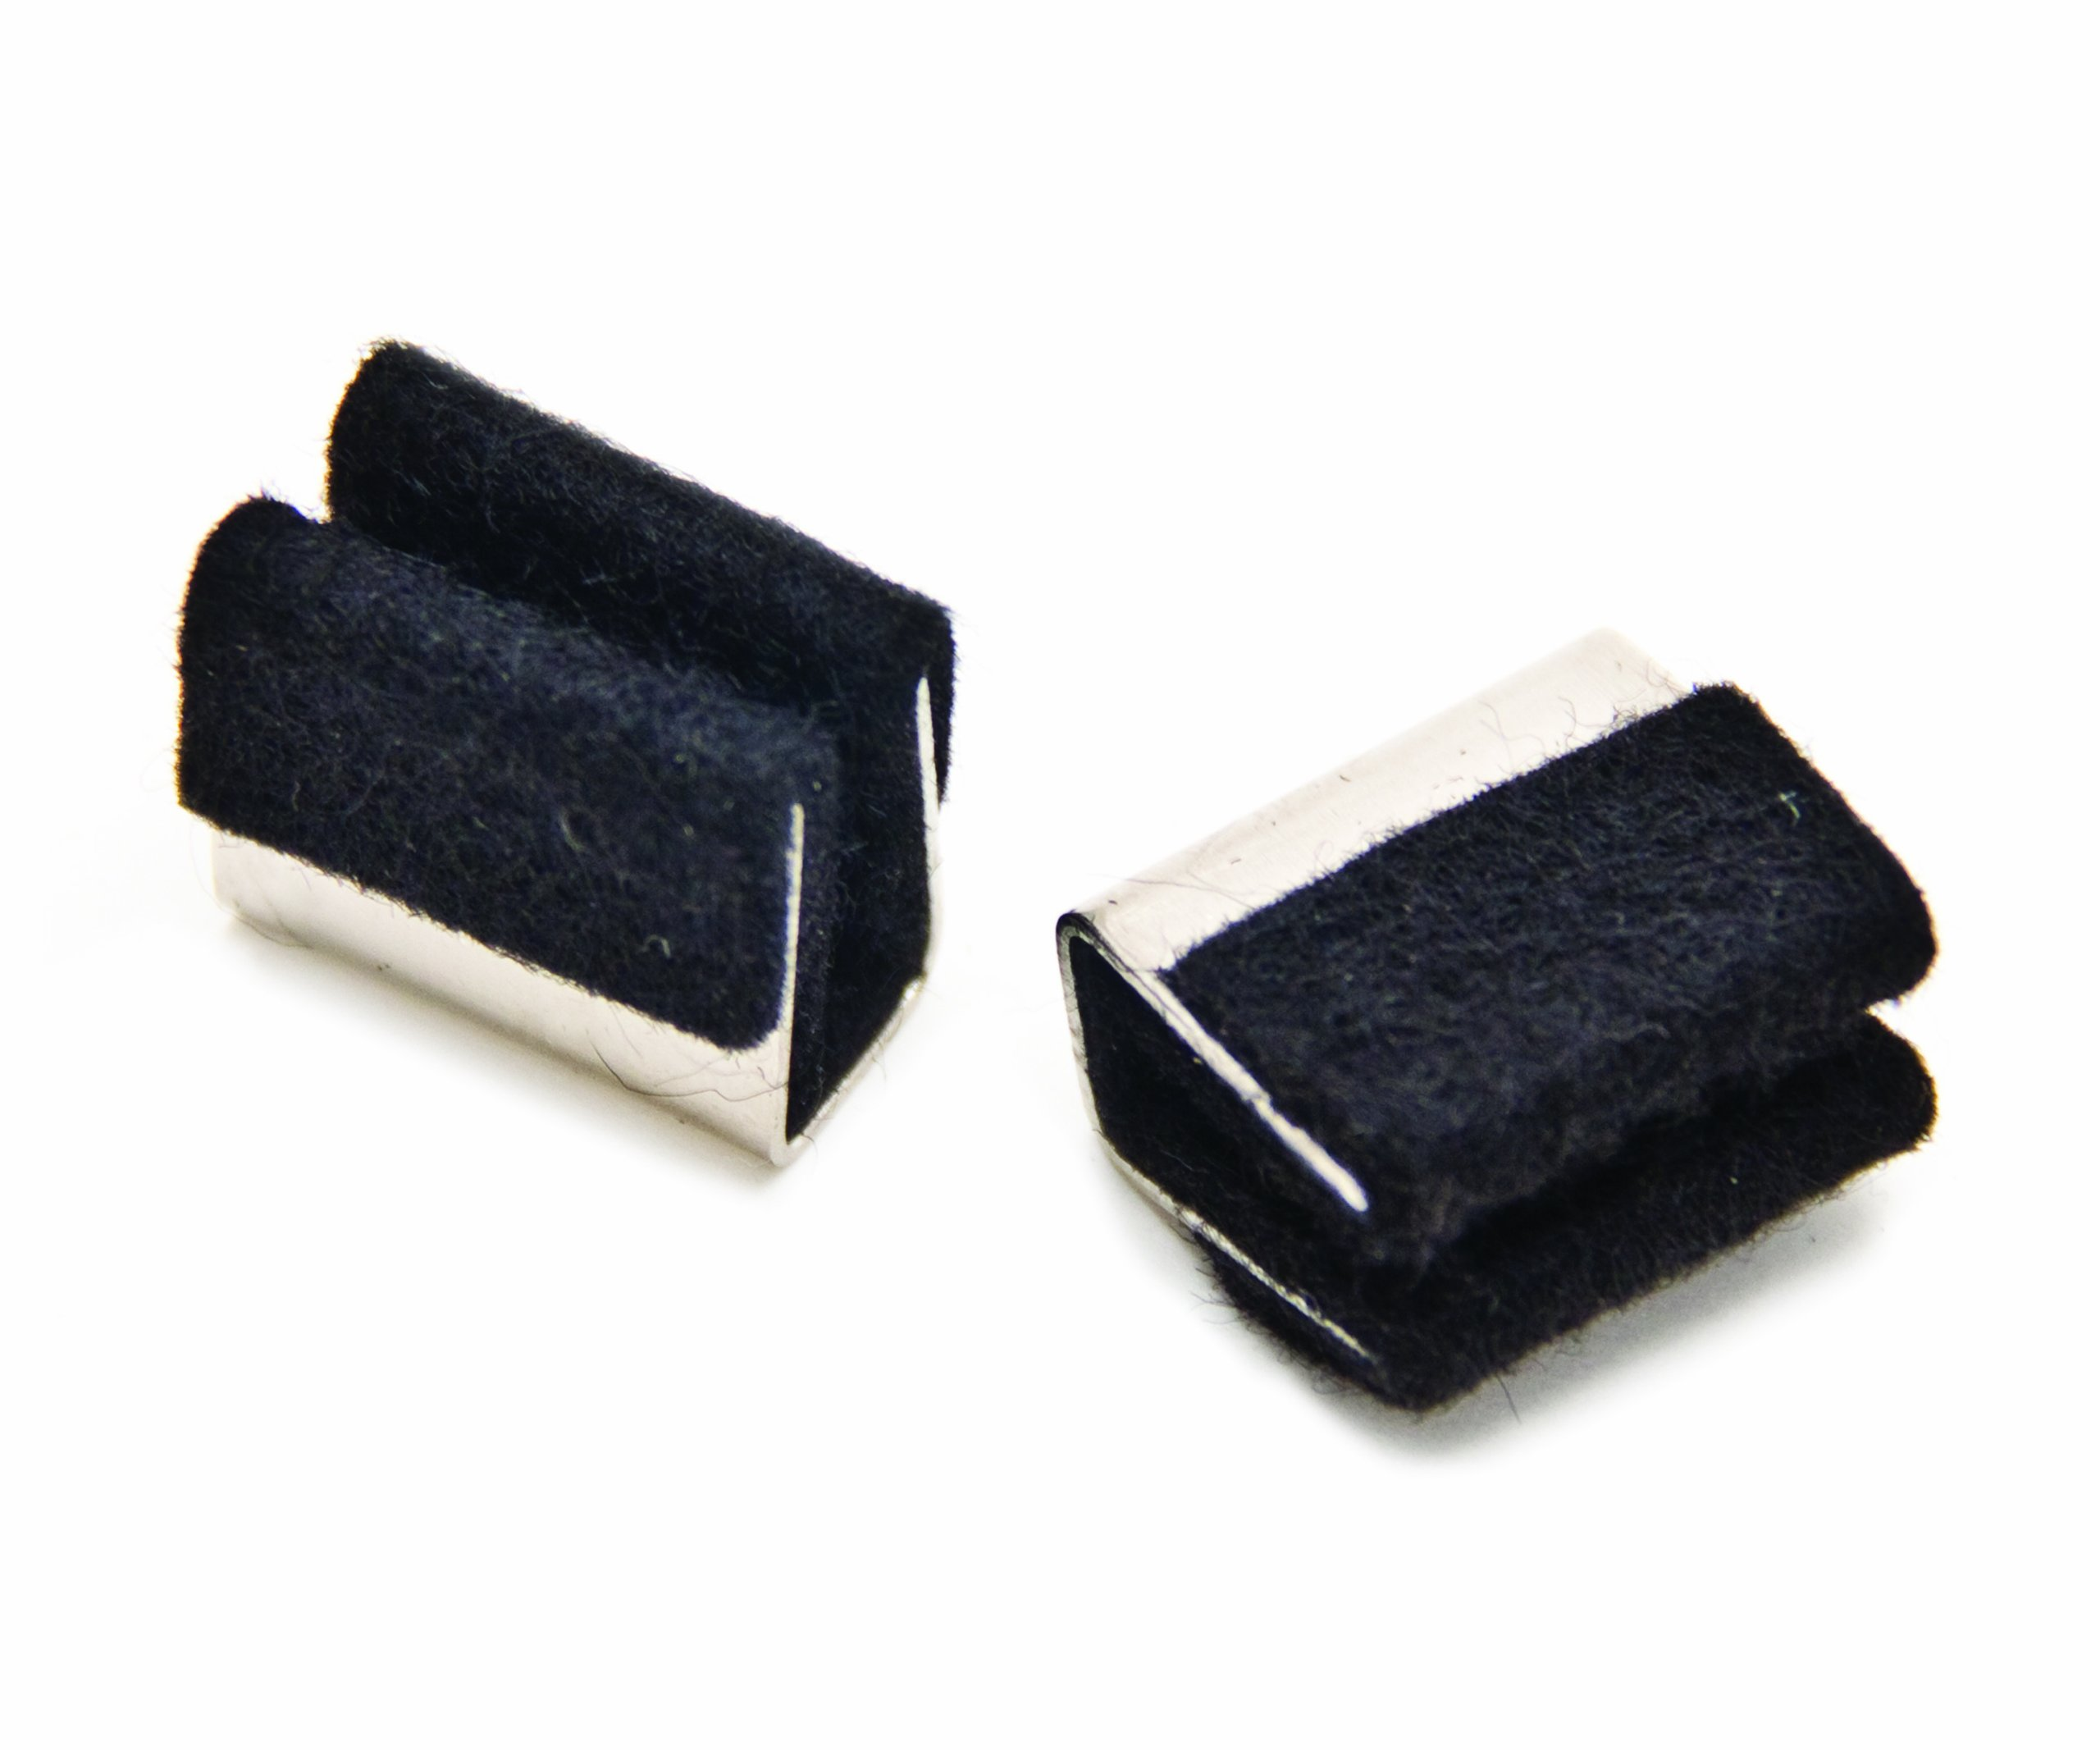 Fishman Pair Felted U-Clips for Upright Bass